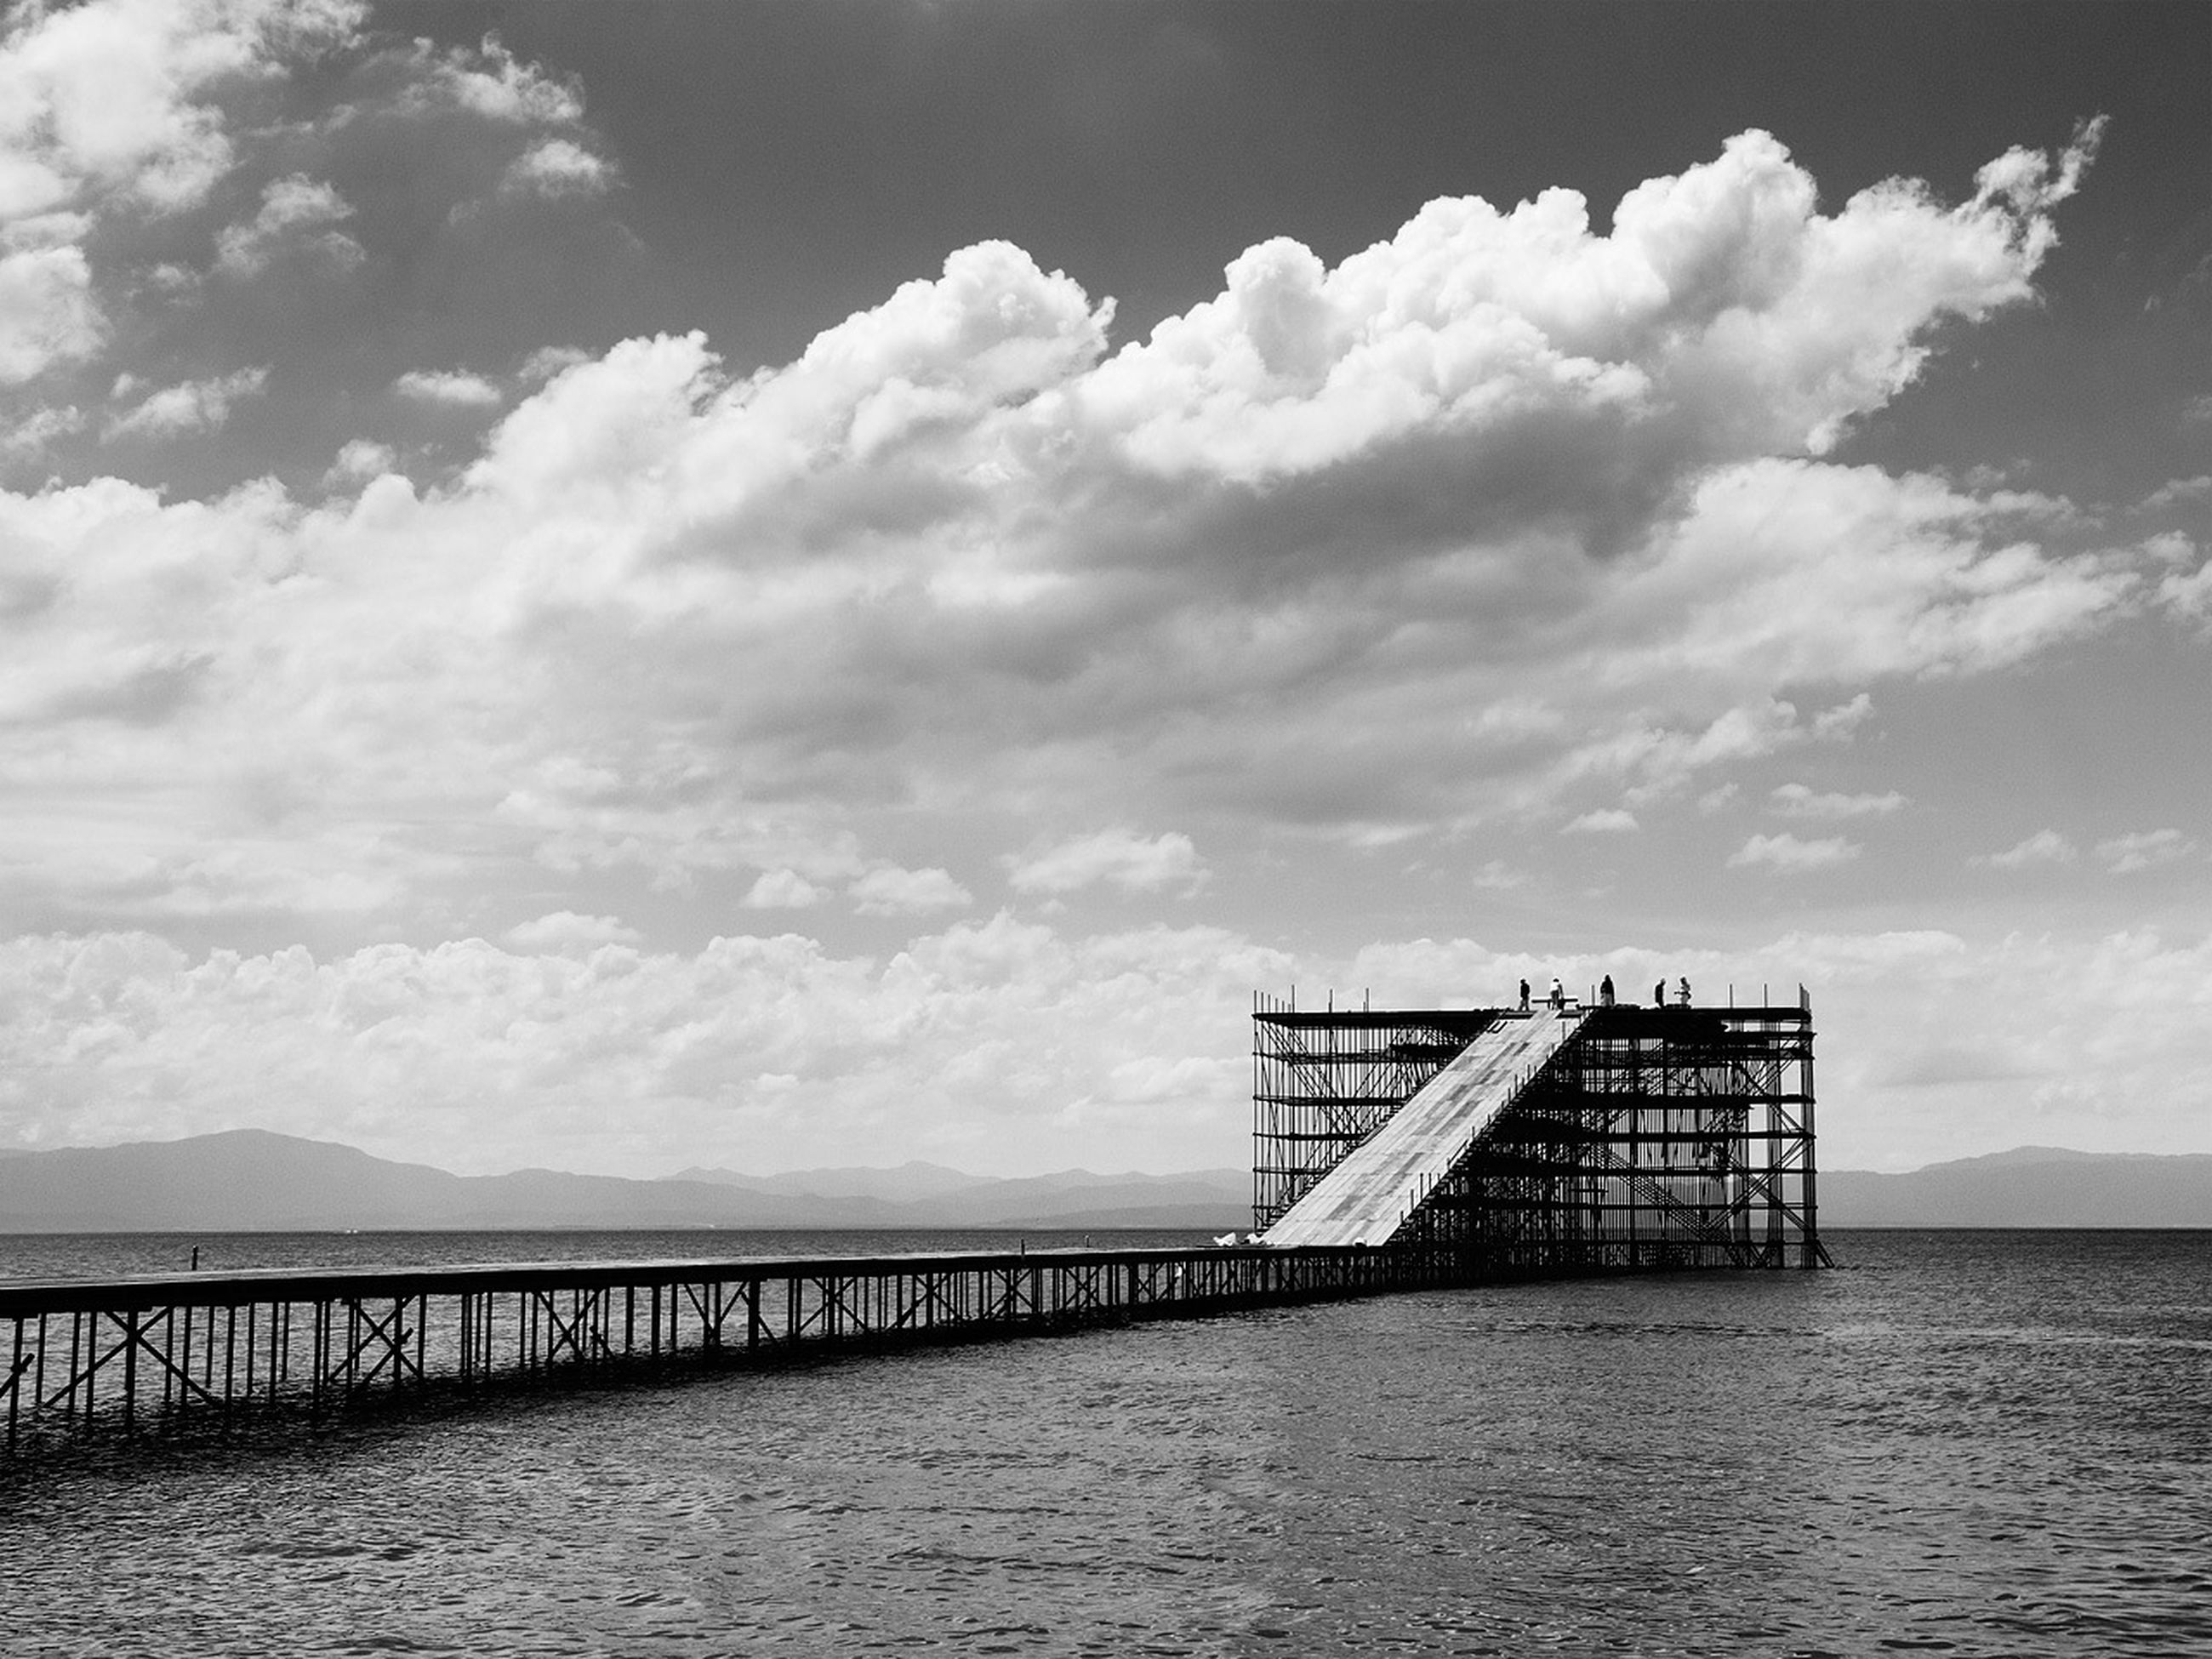 sea, water, pier, sky, built structure, tranquility, horizon over water, tranquil scene, cloud - sky, scenics, railing, nature, jetty, cloudy, cloud, beauty in nature, architecture, beach, calm, waterfront